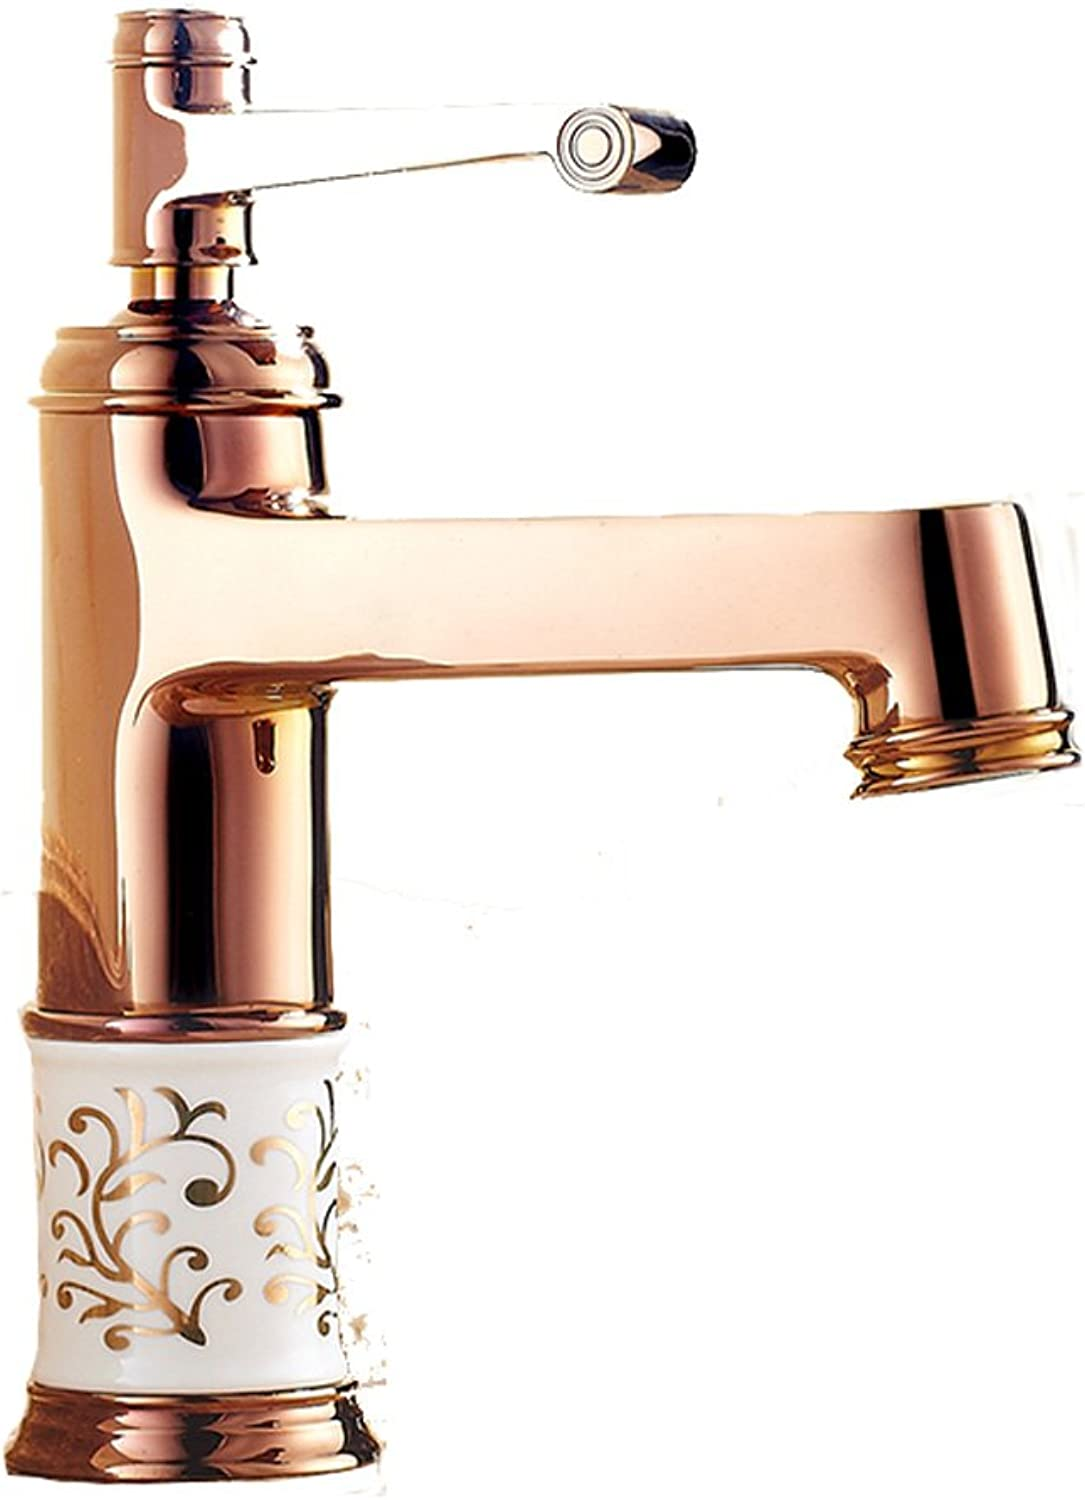 Bidet Taps pink gold Faucet Copper Hot And Cold Single Hole bluee And White Porcelain Bathroom Retro Aperture 32MM To 35MM Can Be Installed